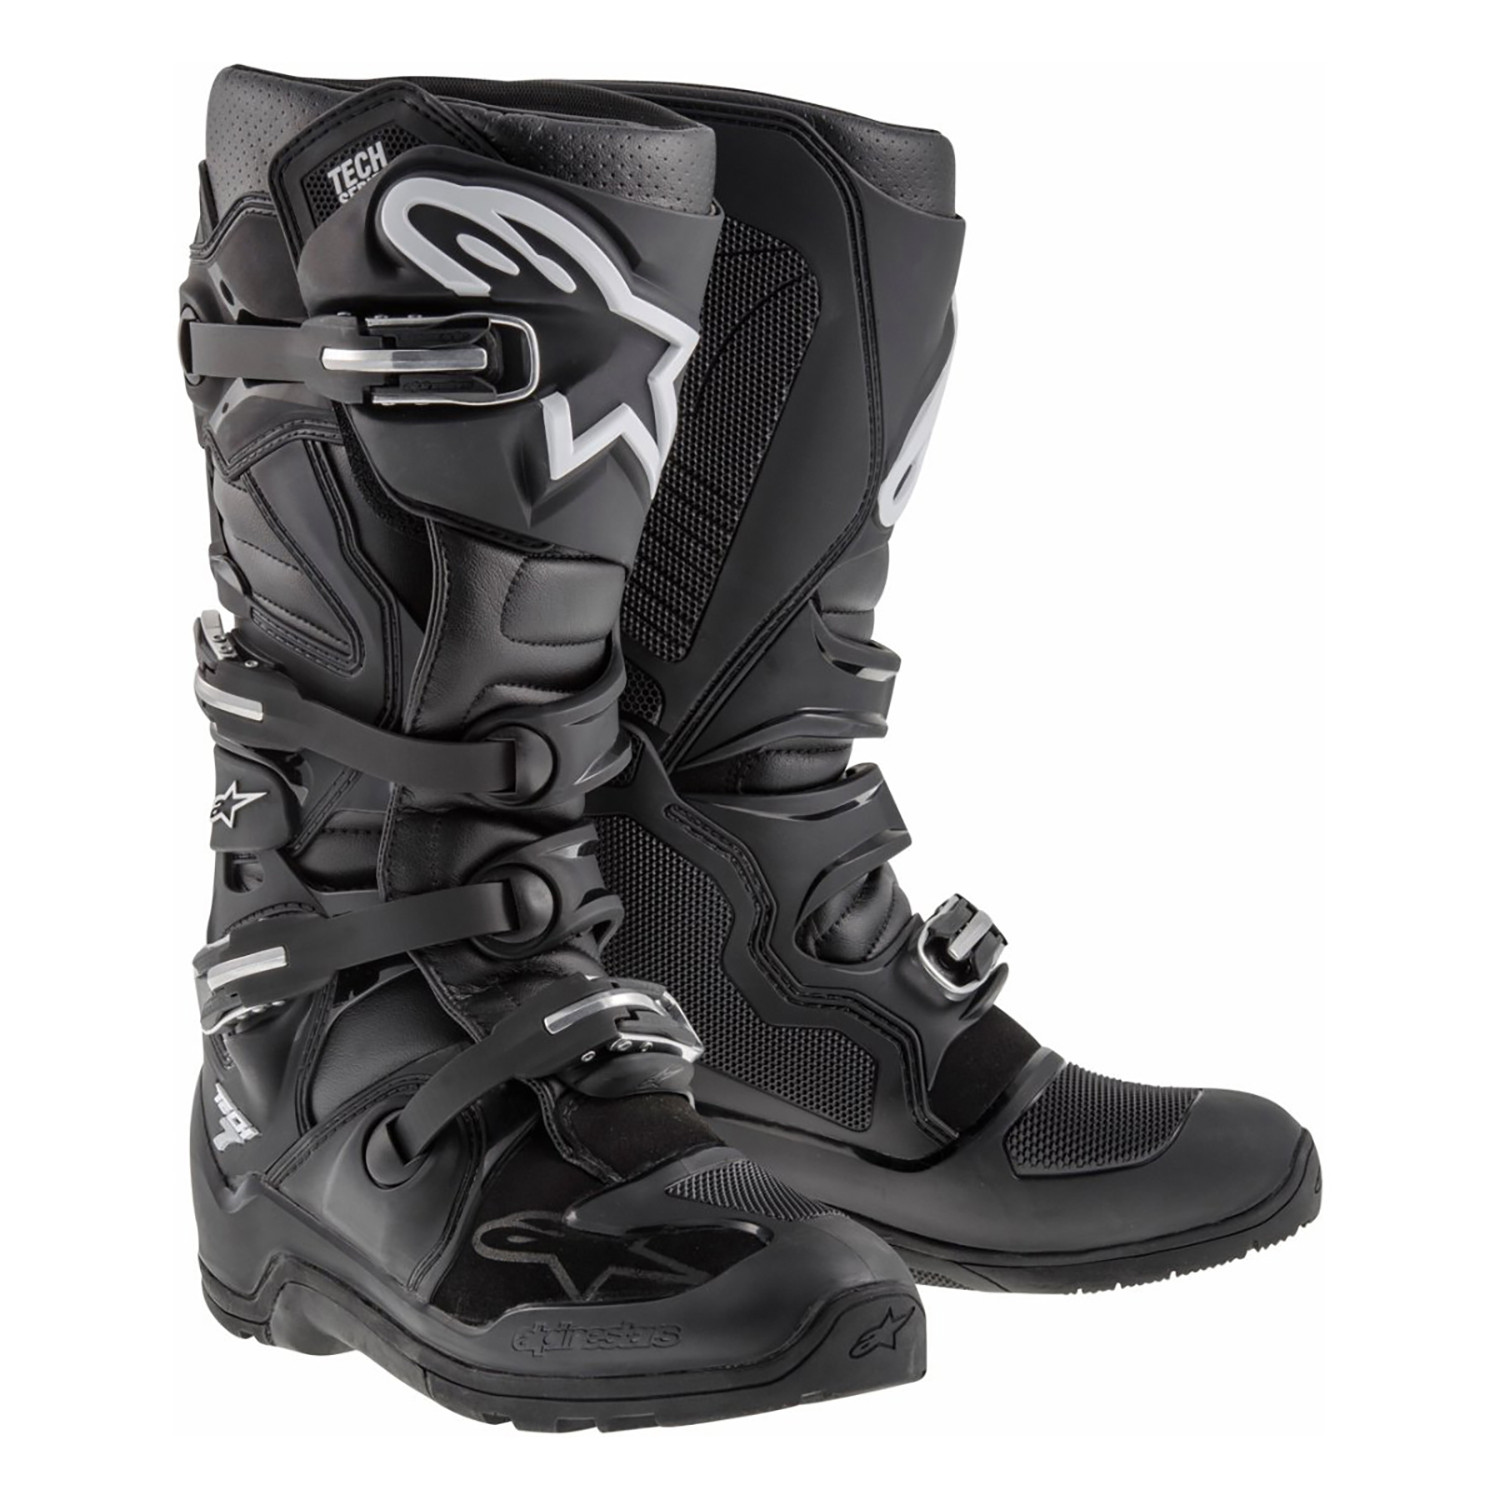 Botas Alpinestars Tech 7 Original